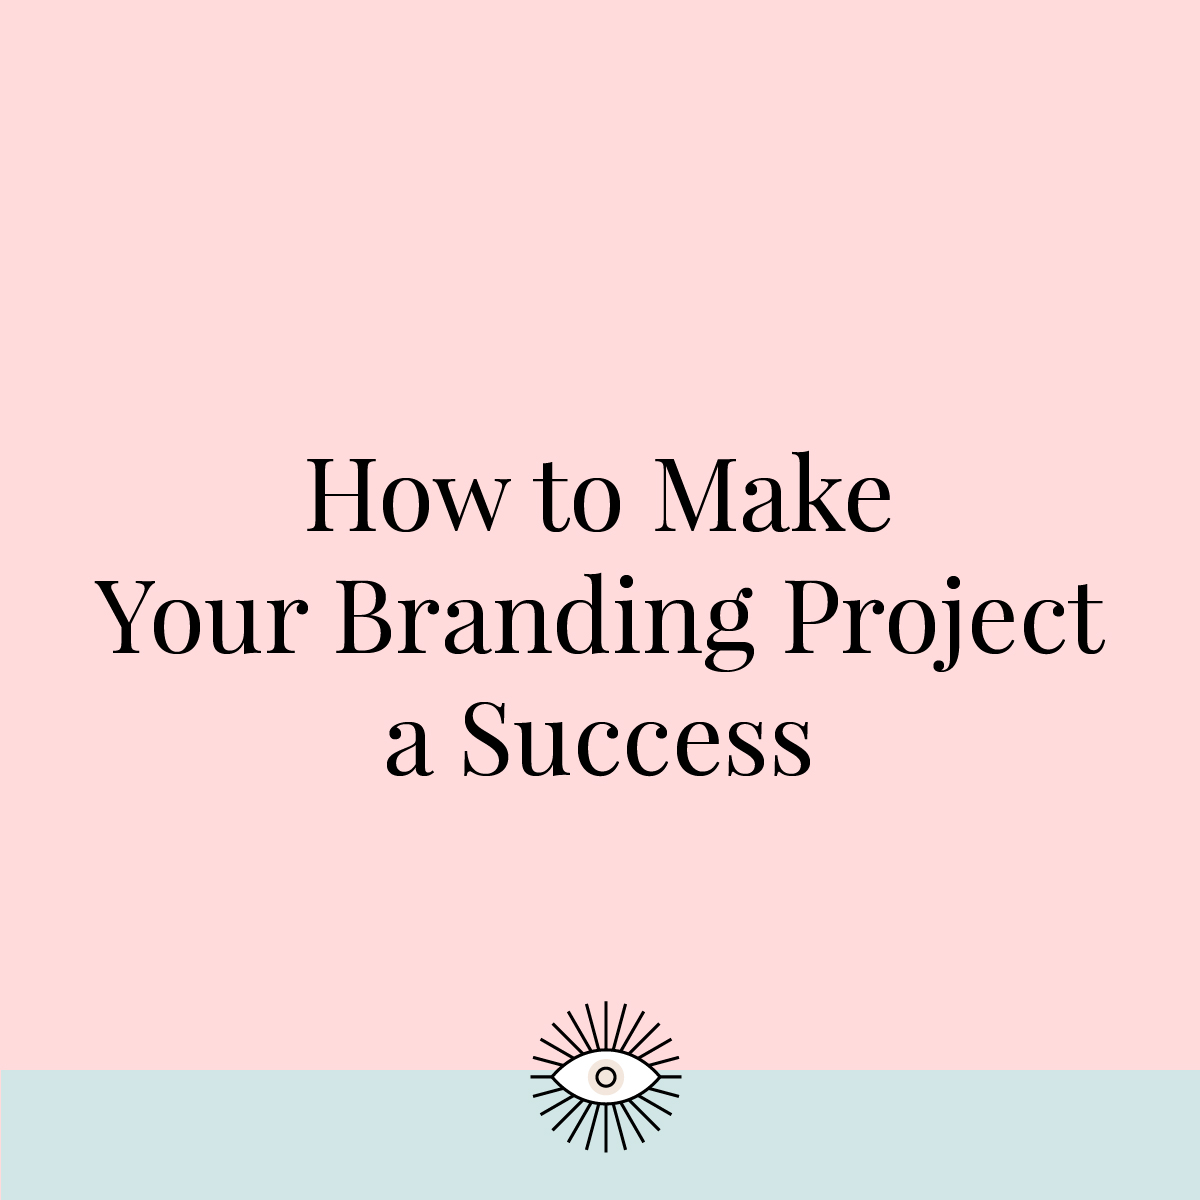 How to make your branding project a success